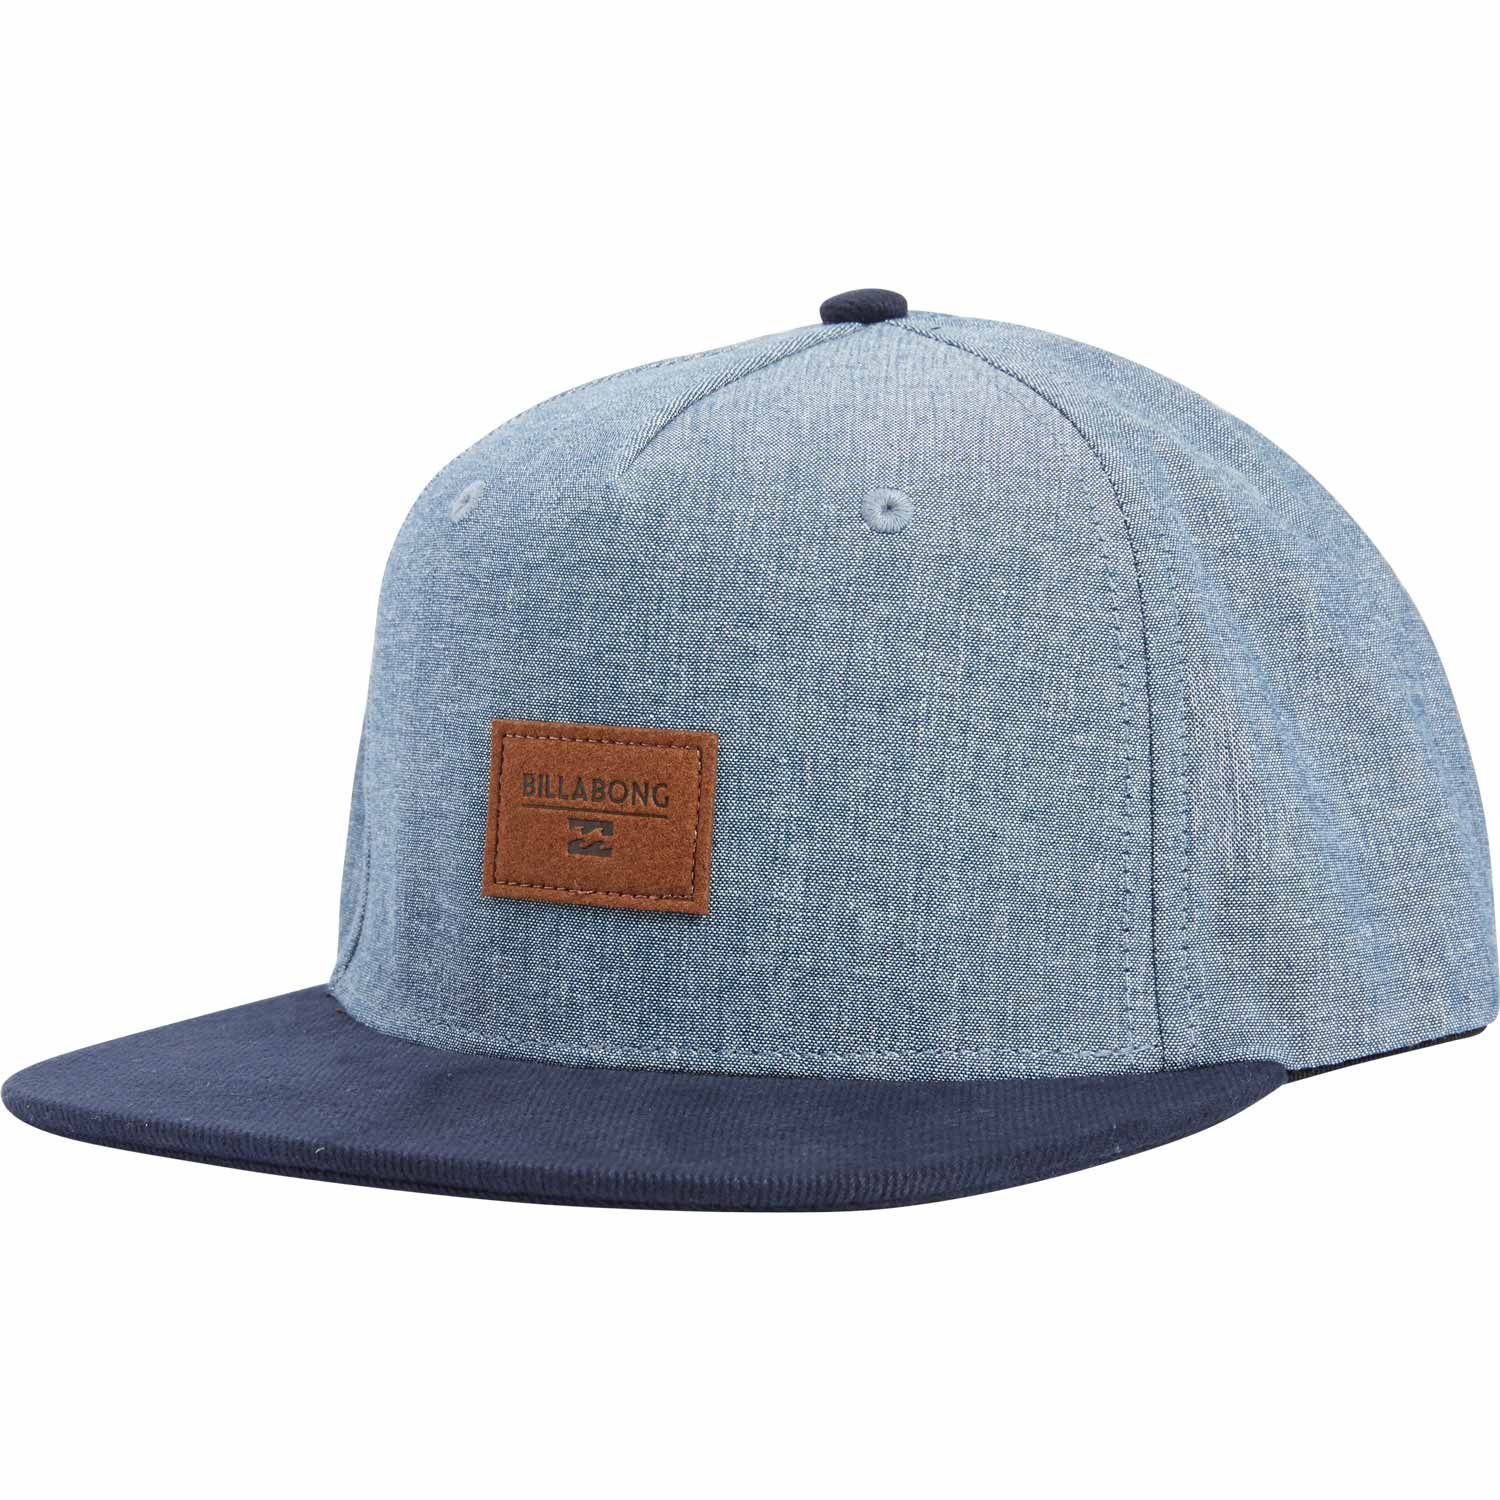 786b33b535c  29 An essential that s at the top of its class. A suiting fabric gives  this snapback a dose